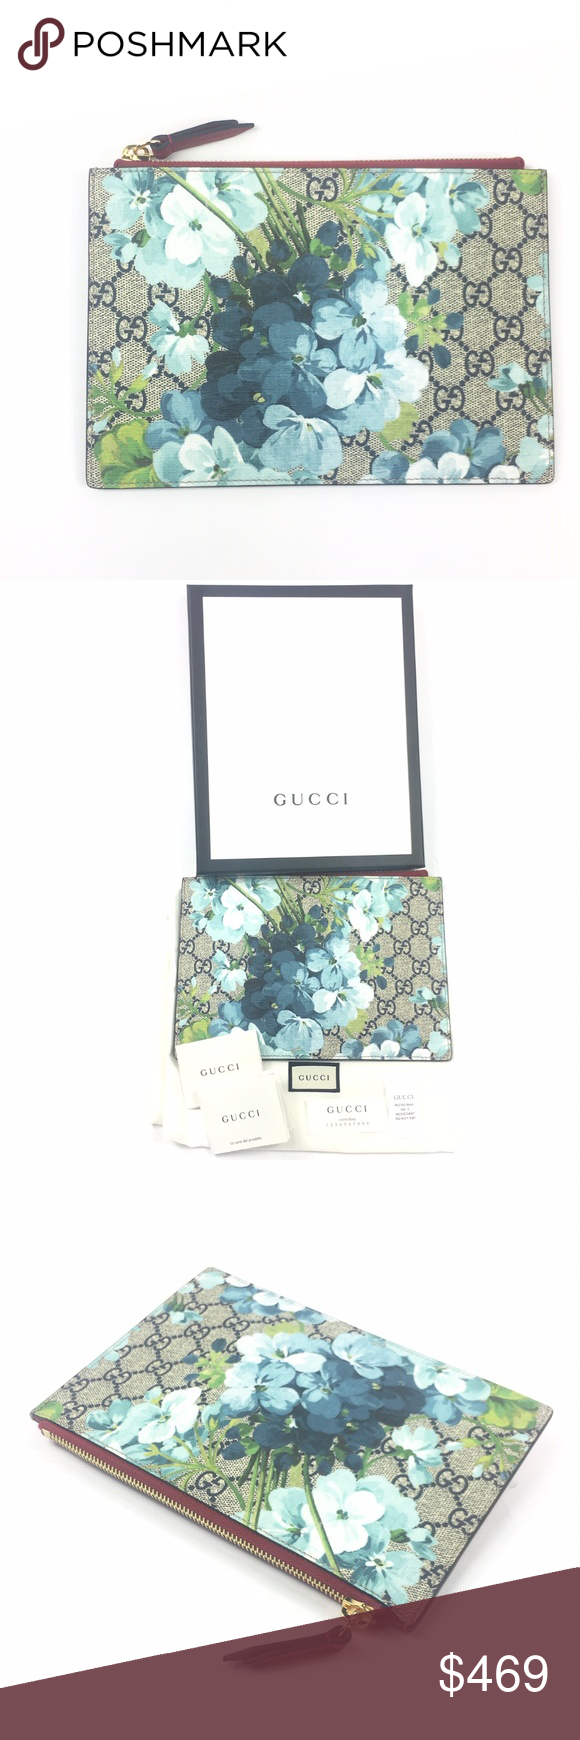 3fadd9aaba3c Gucci #546370 GG Supreme Bloom ZipTop Pouch/Clutch - Bloom Multicolor GG  Supreme Coated